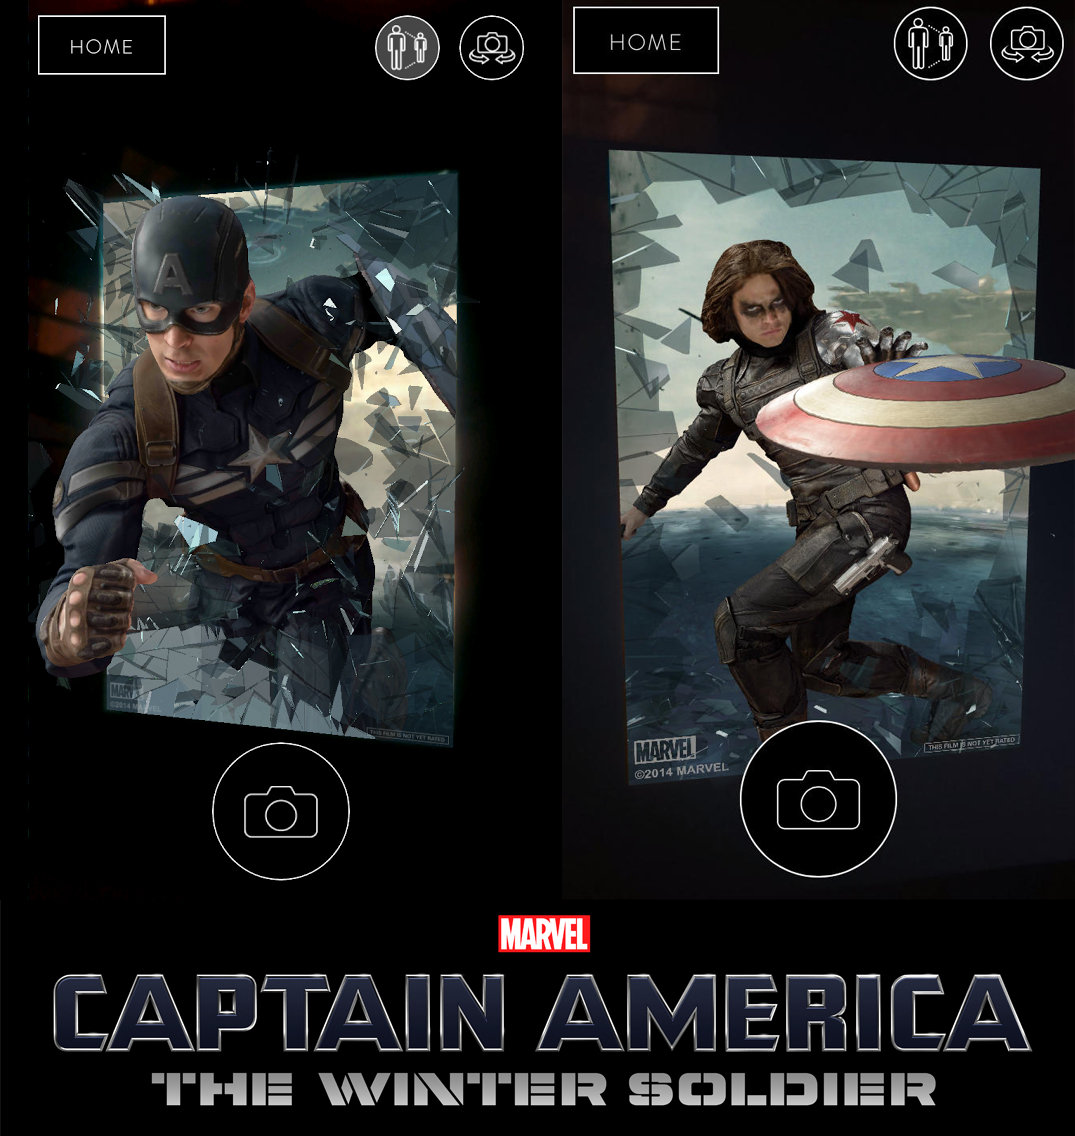 The Captain America experience